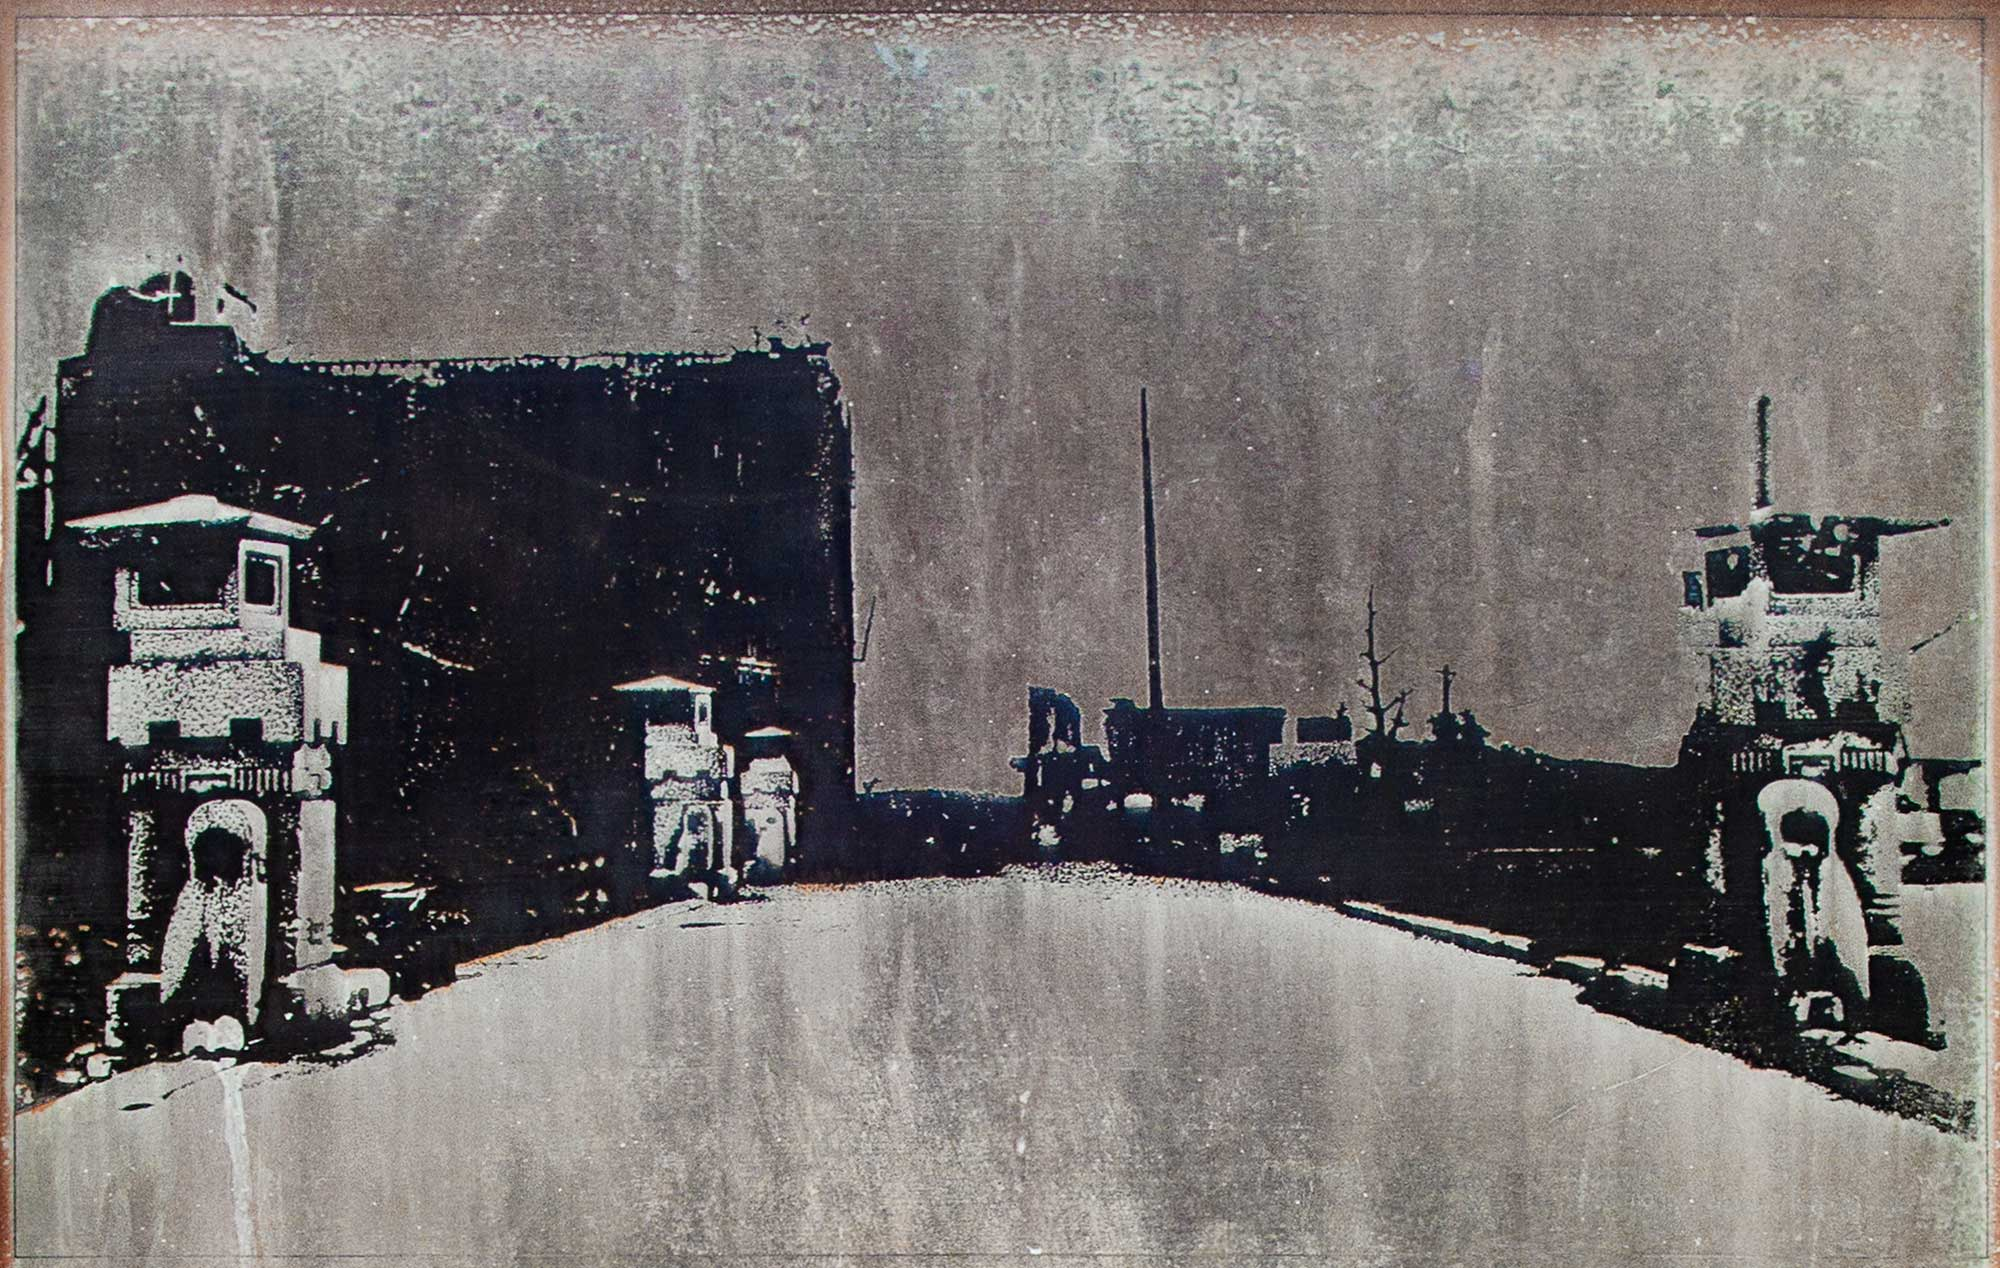 The Motoyasu Bridge, Hiroshima, about 130 meters from the hypocenter, fall 1945, March 2013, Chromogenic print, 9 x 12 inch.